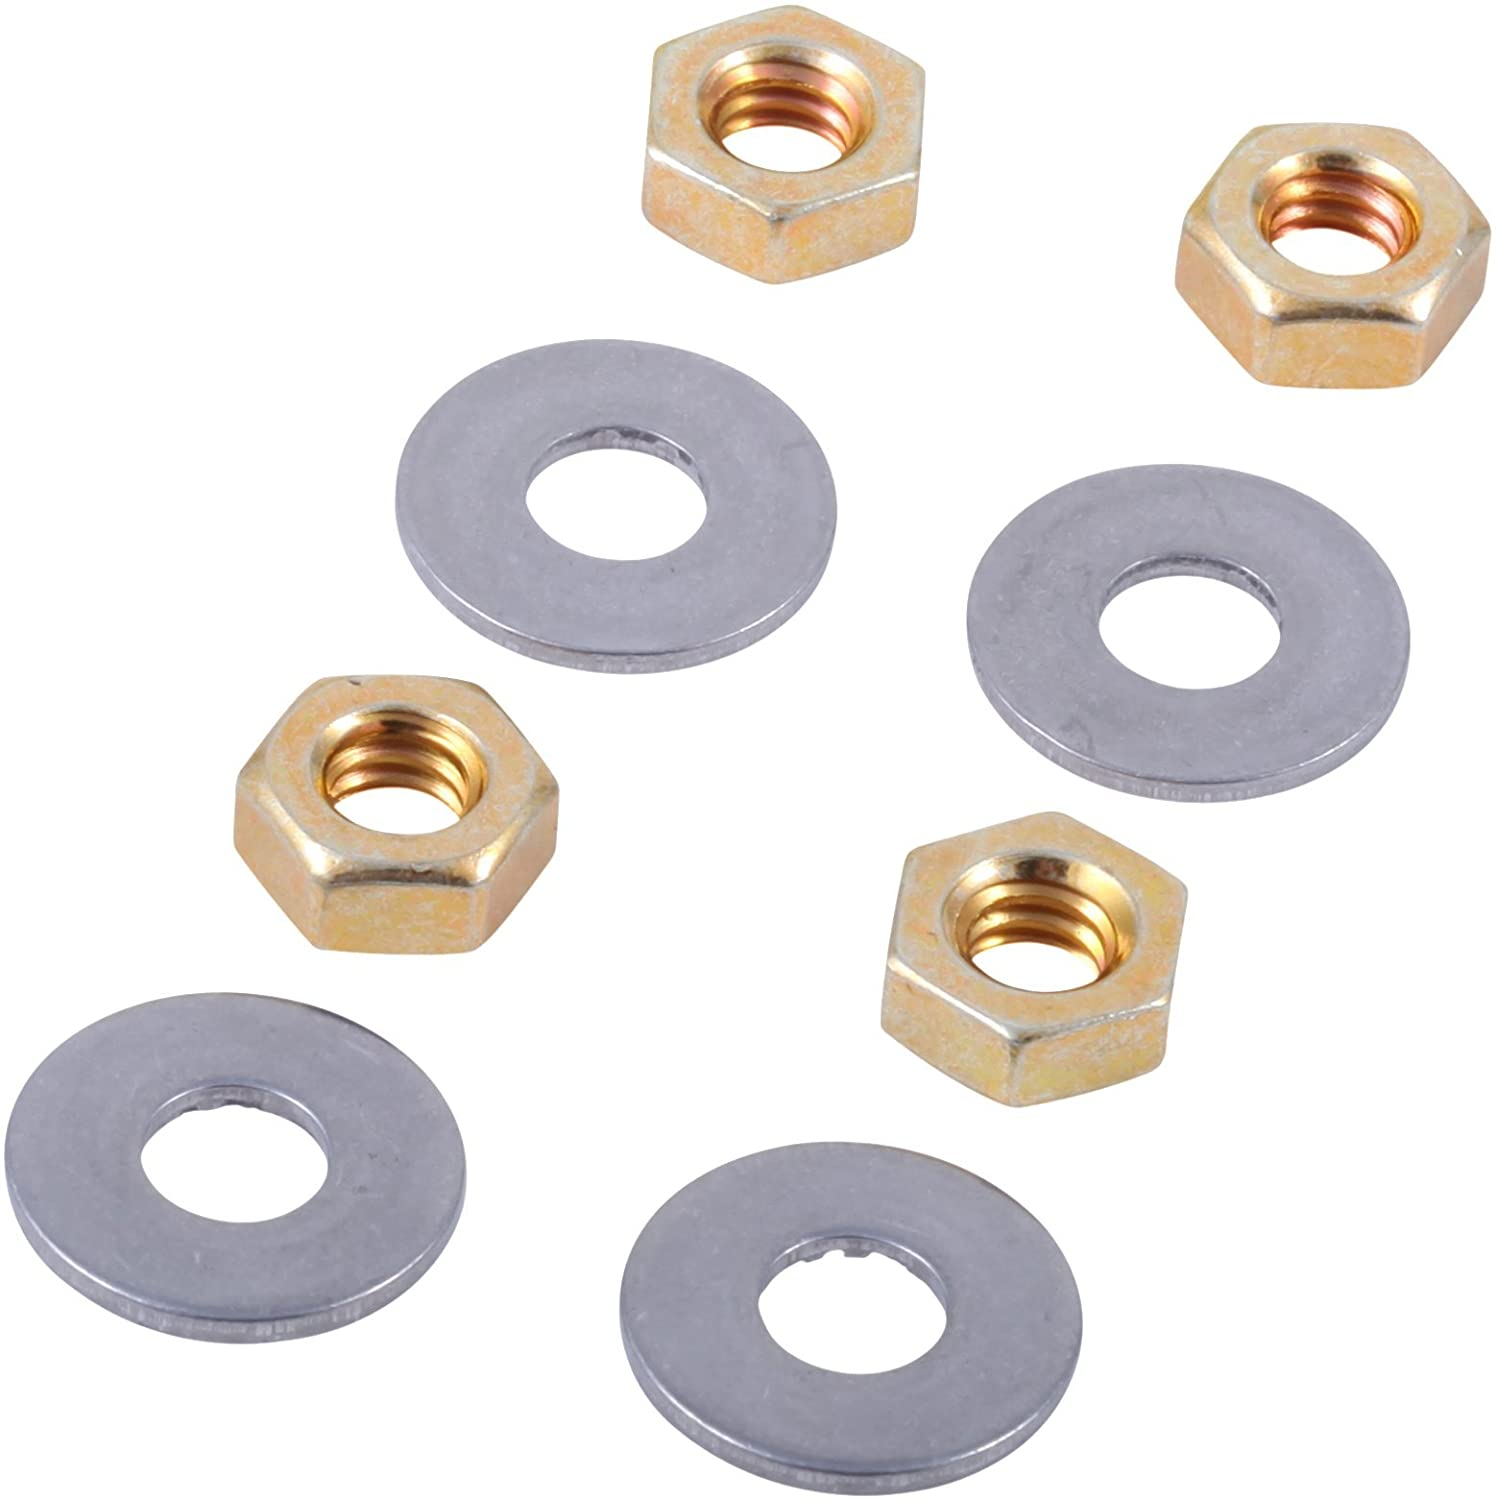 Delta Faucet RP74819 Trinsic Nuts Washers Mounting